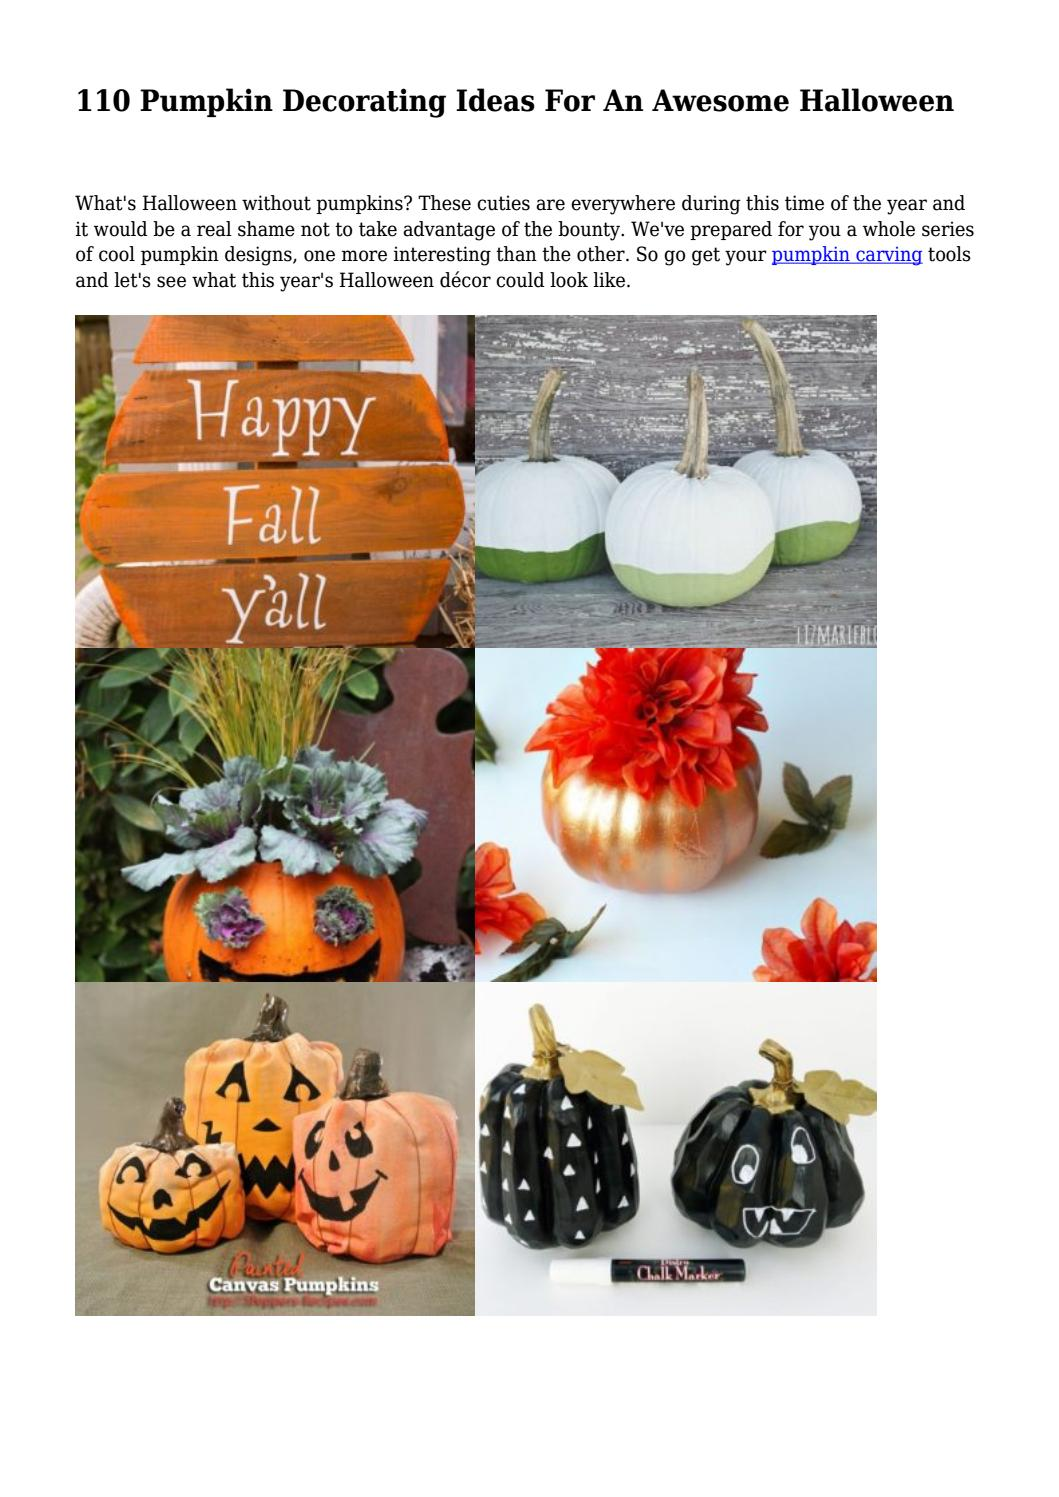 110 Pumpkin Decorating Ideas For An Awesome Halloween By